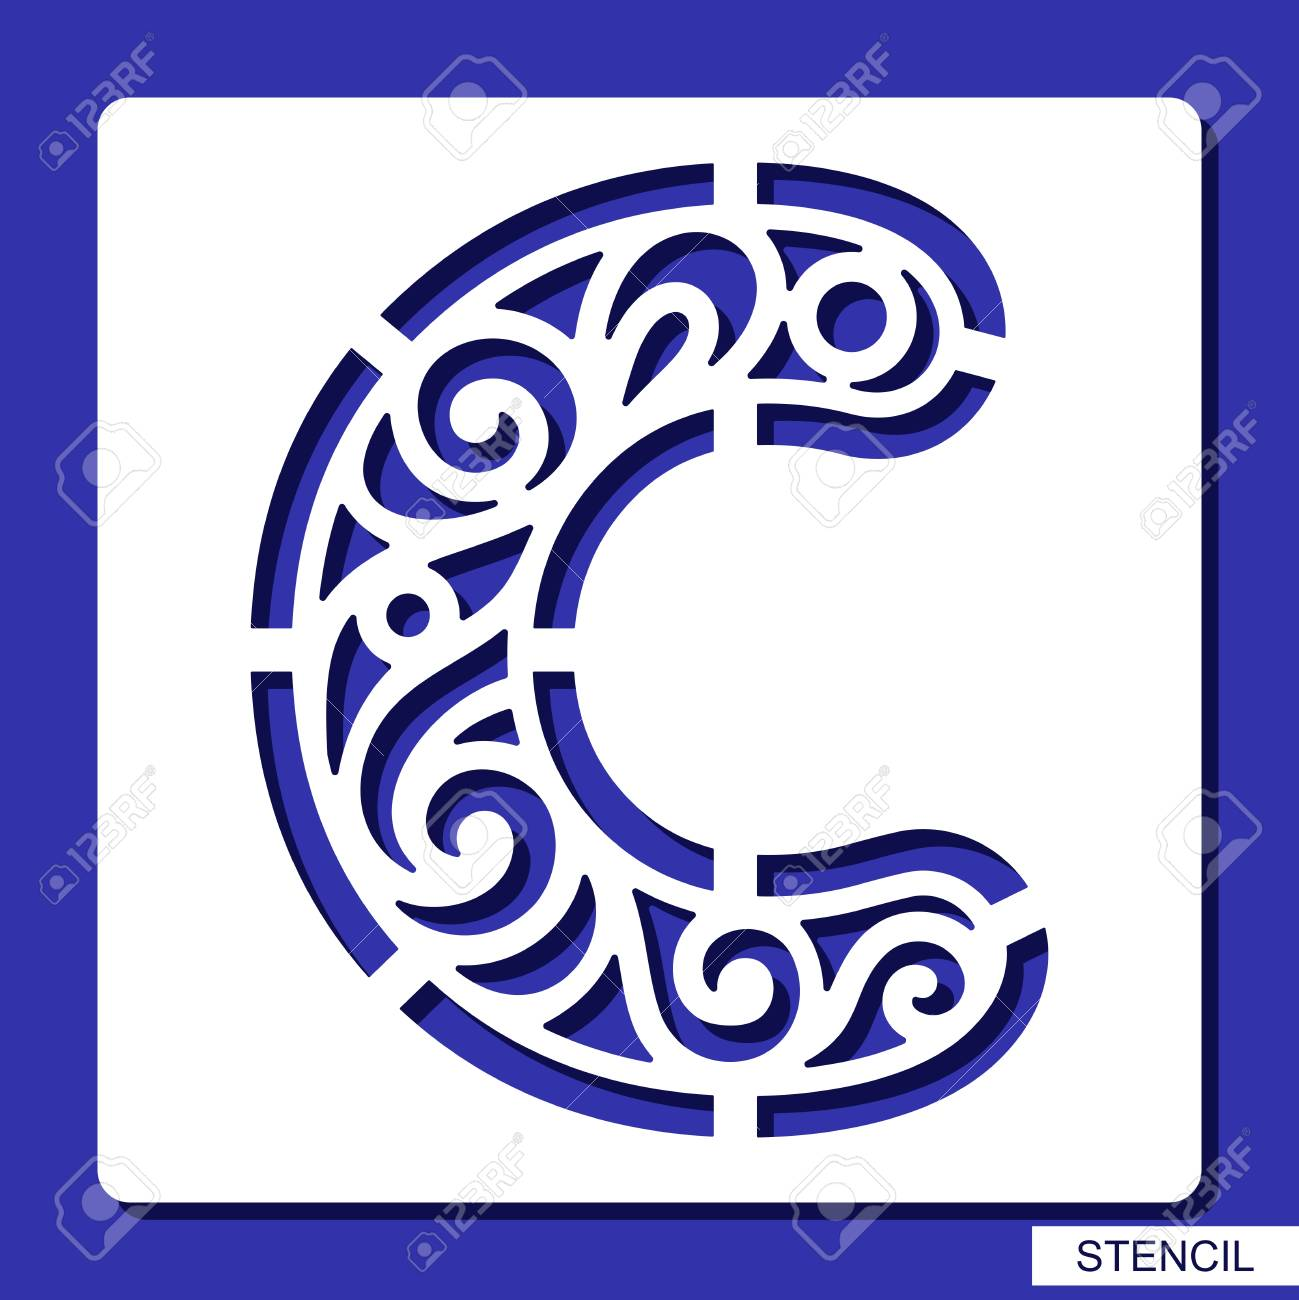 Stencil lacy letter c template for laser cutting wood carving stencil lacy letter c template for laser cutting wood carving paper cut spiritdancerdesigns Choice Image